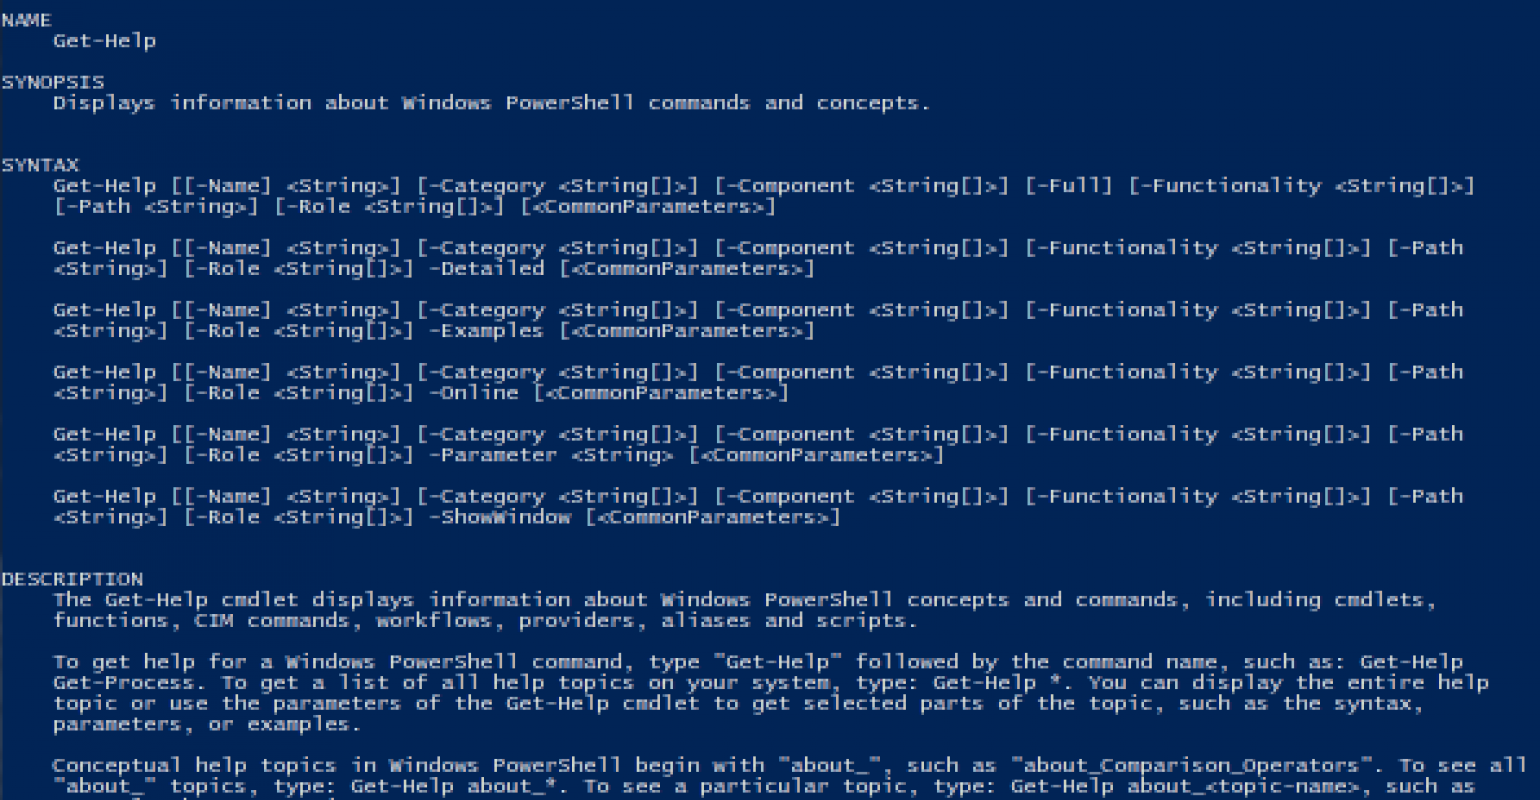 Map SMB drive using PowerShell | IT Pro